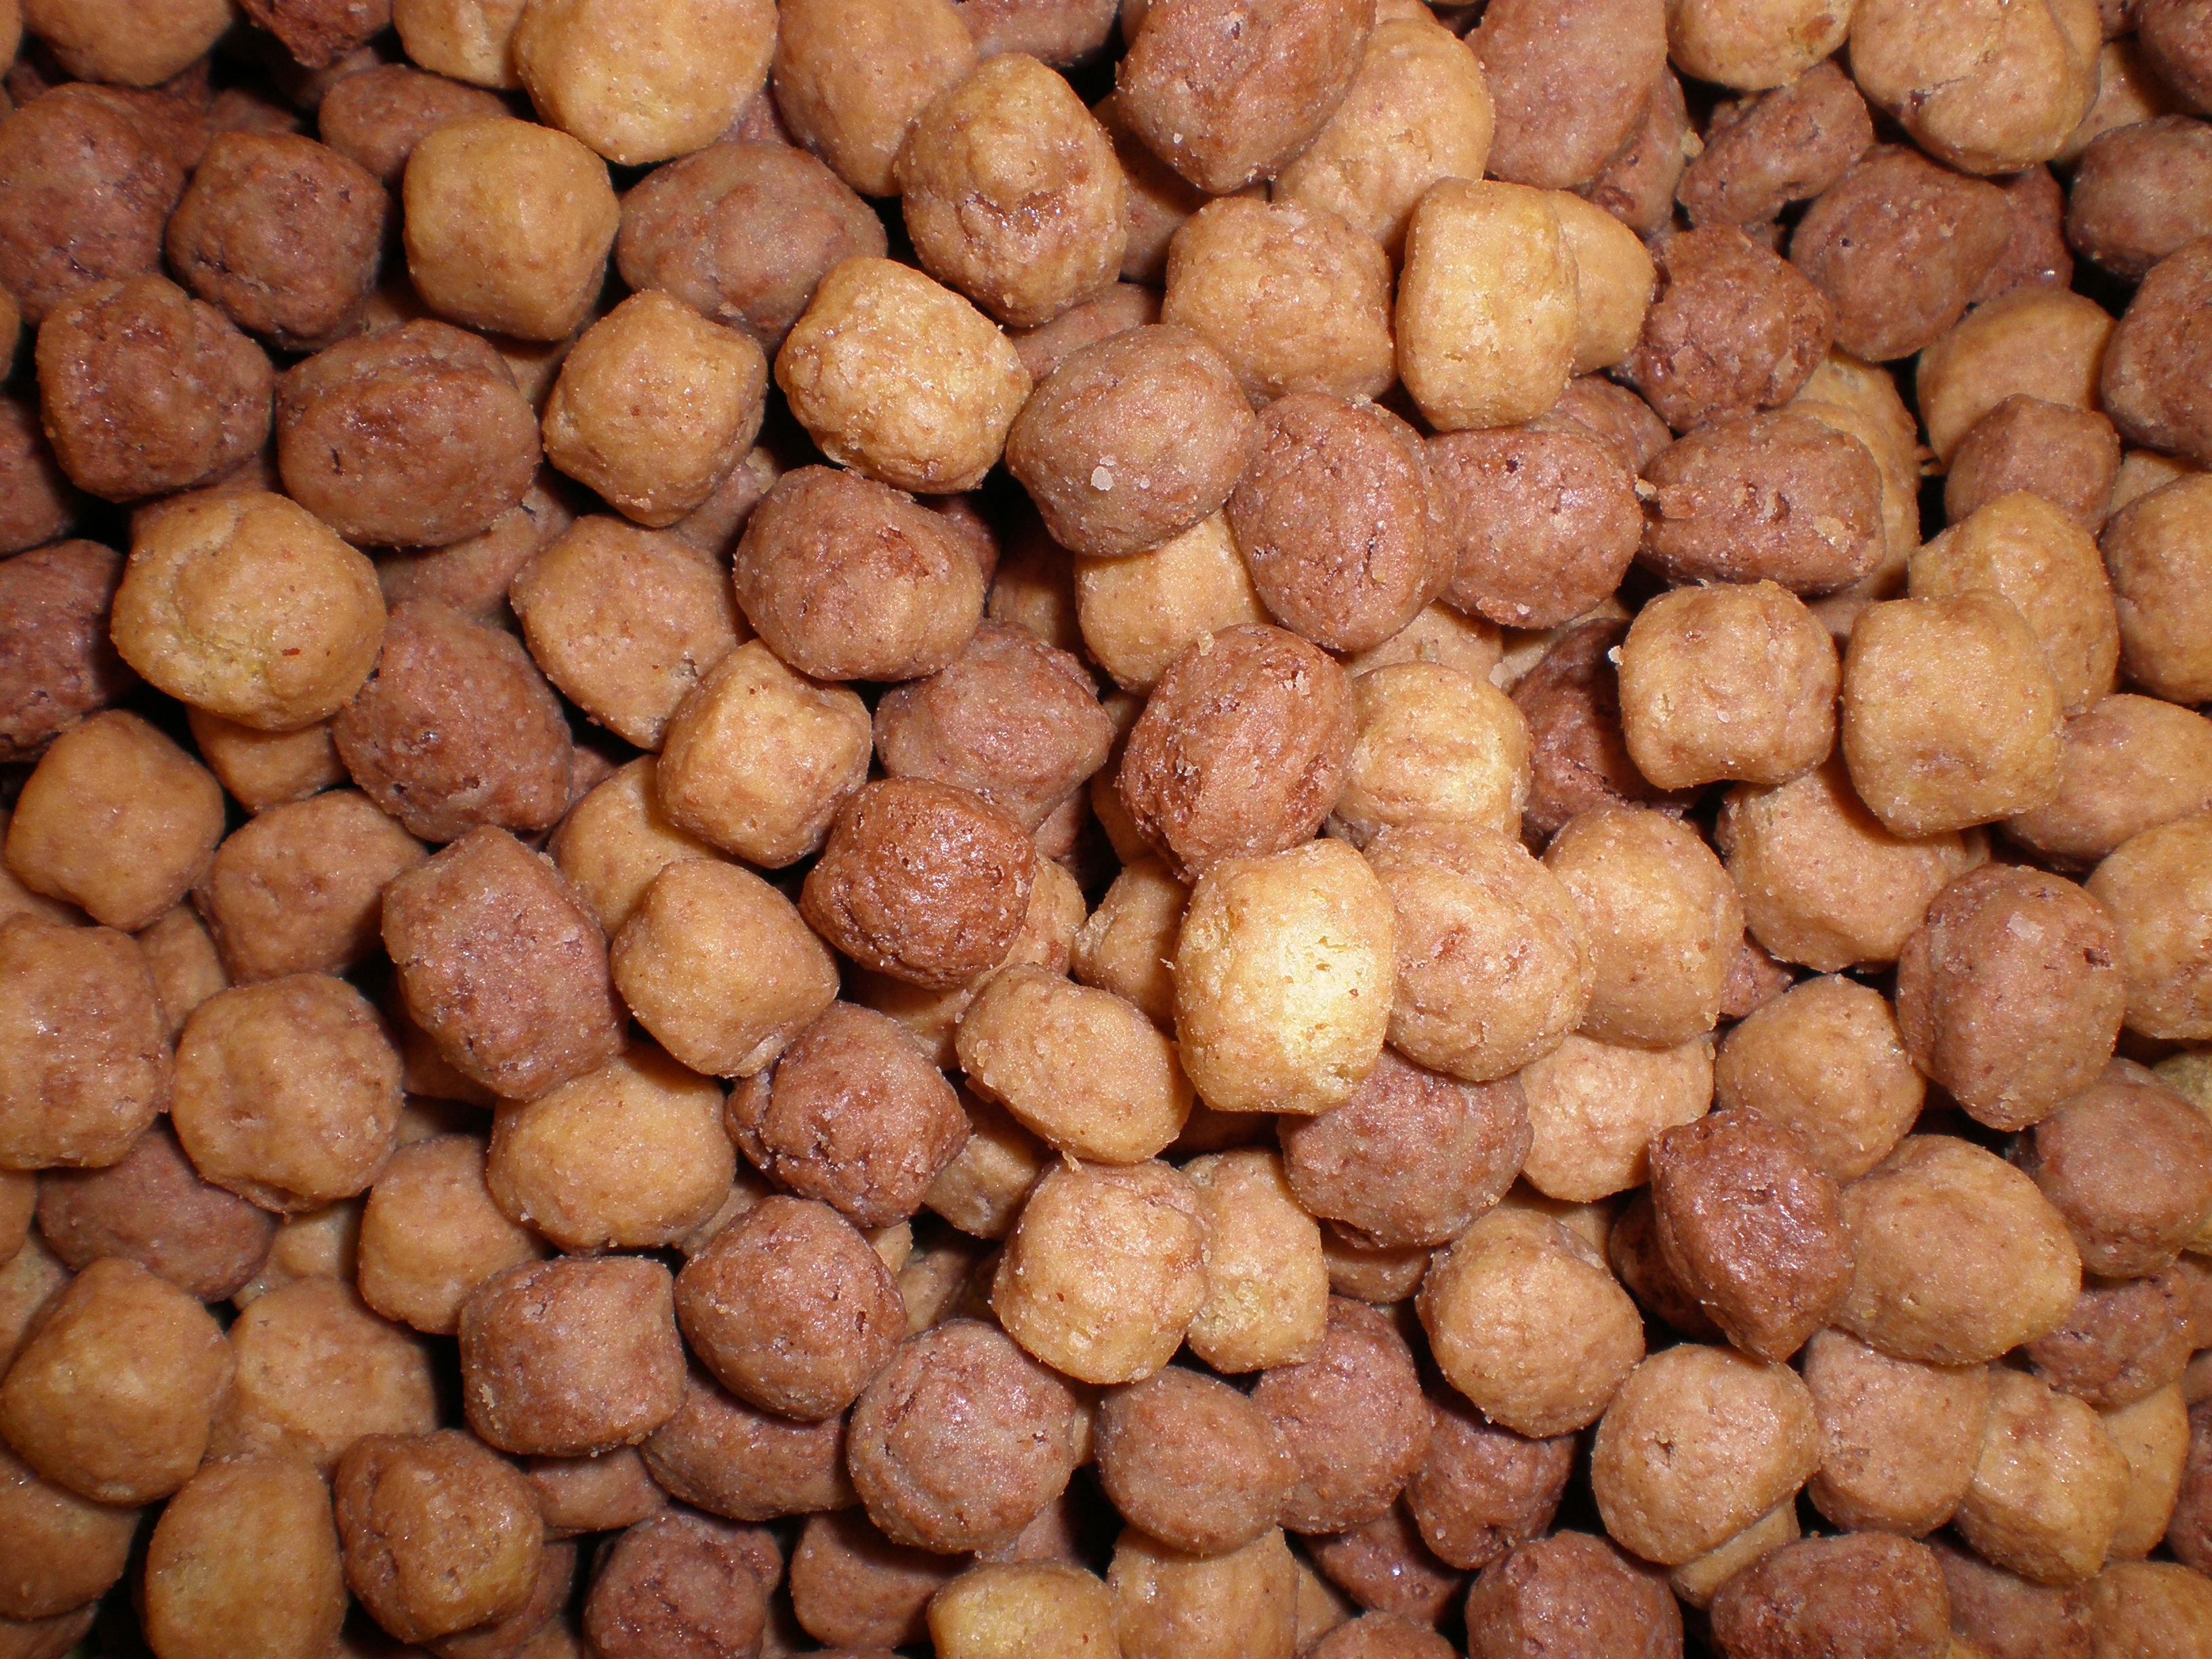 Can Chocolate Cereal Kill Dogs